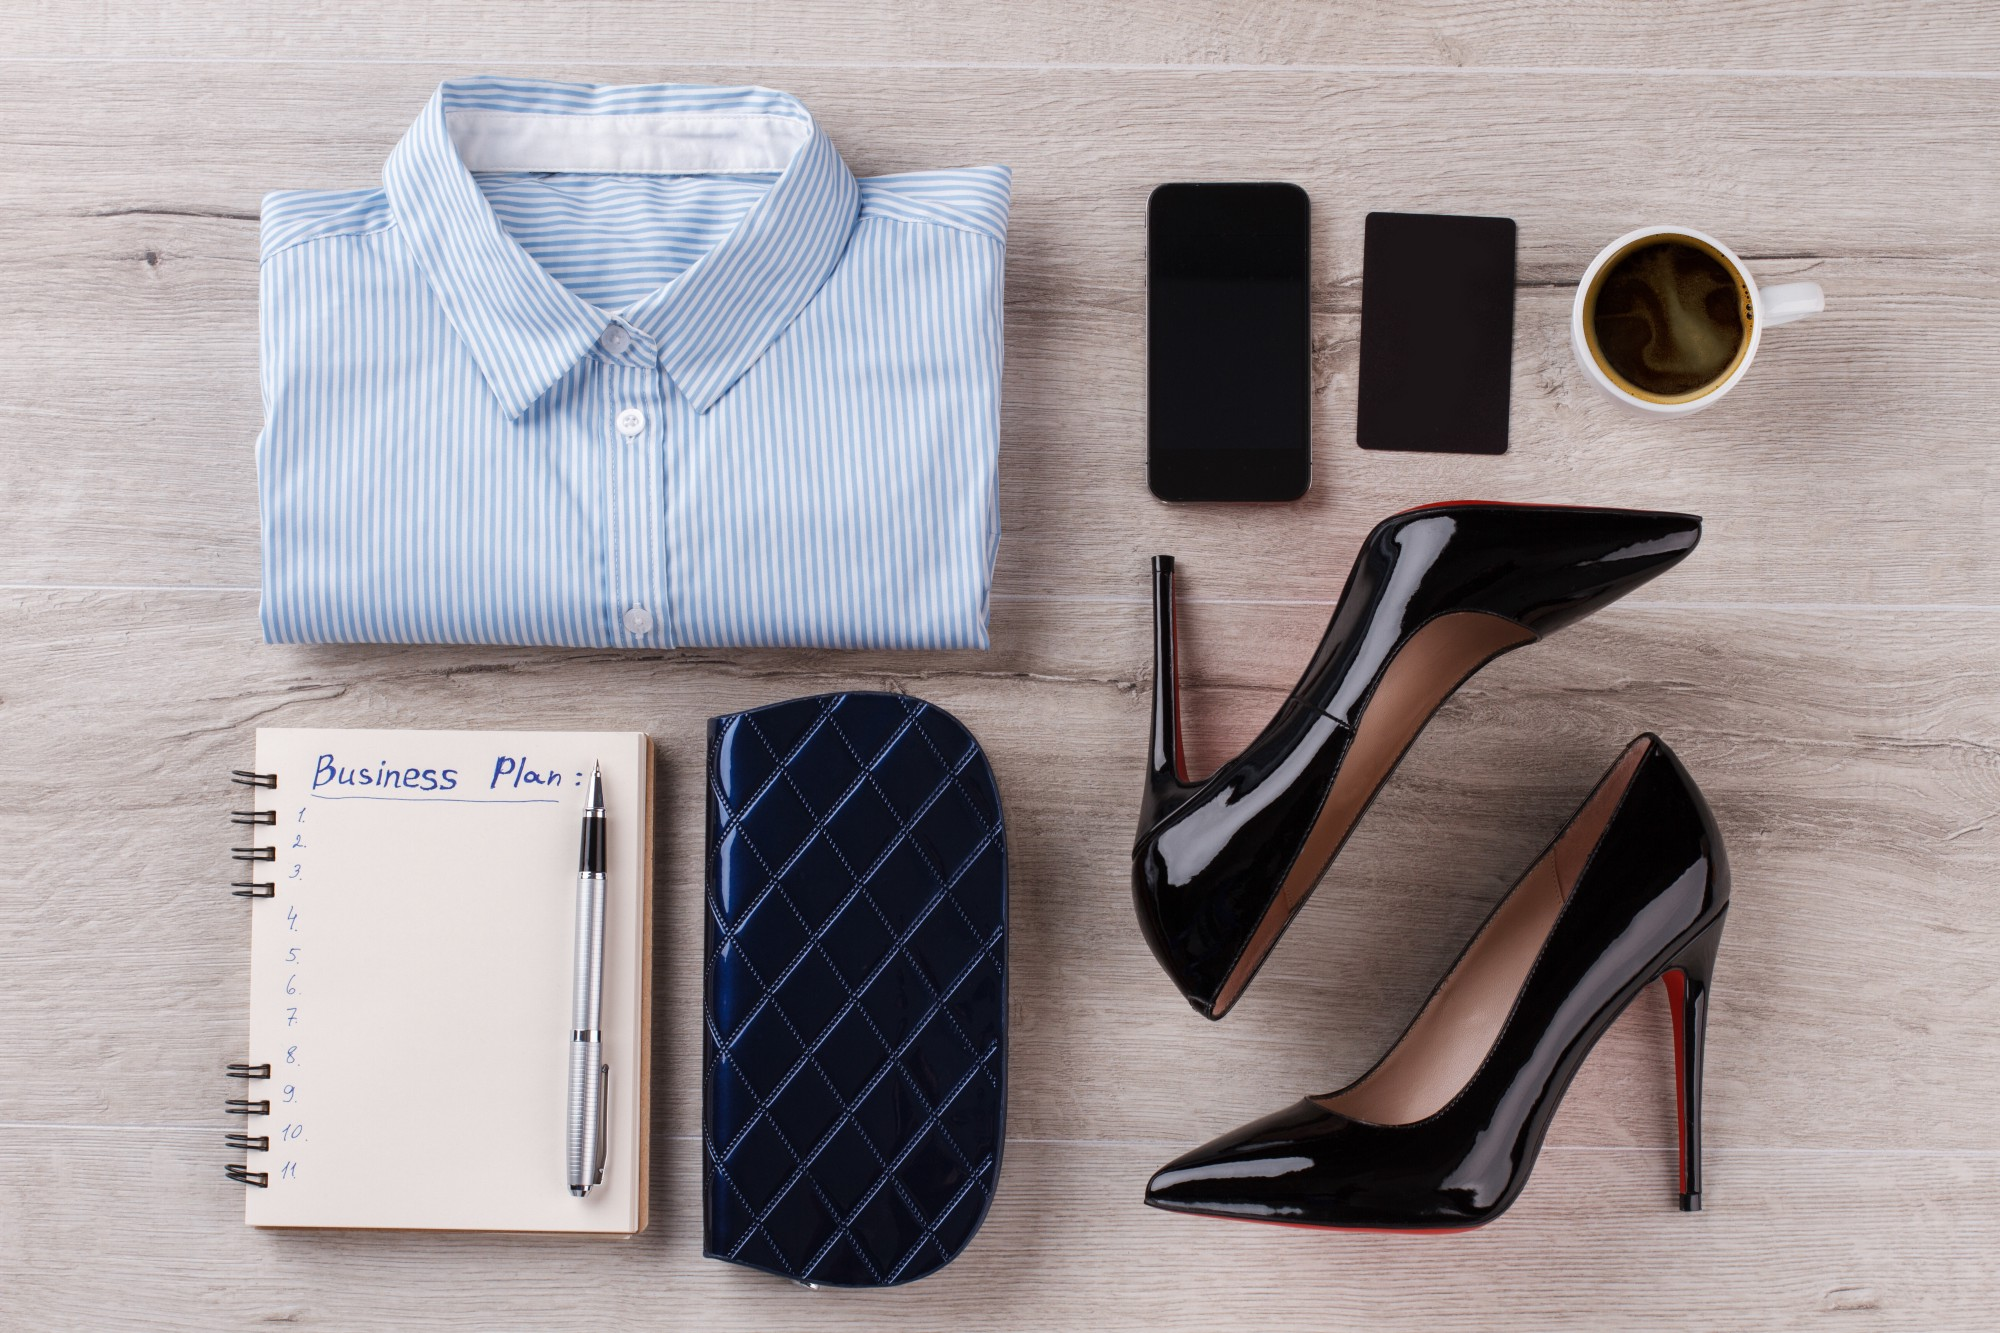 Shirt, notebook with pen. Office woman's flatlay on wooden table. Look in dark shades.